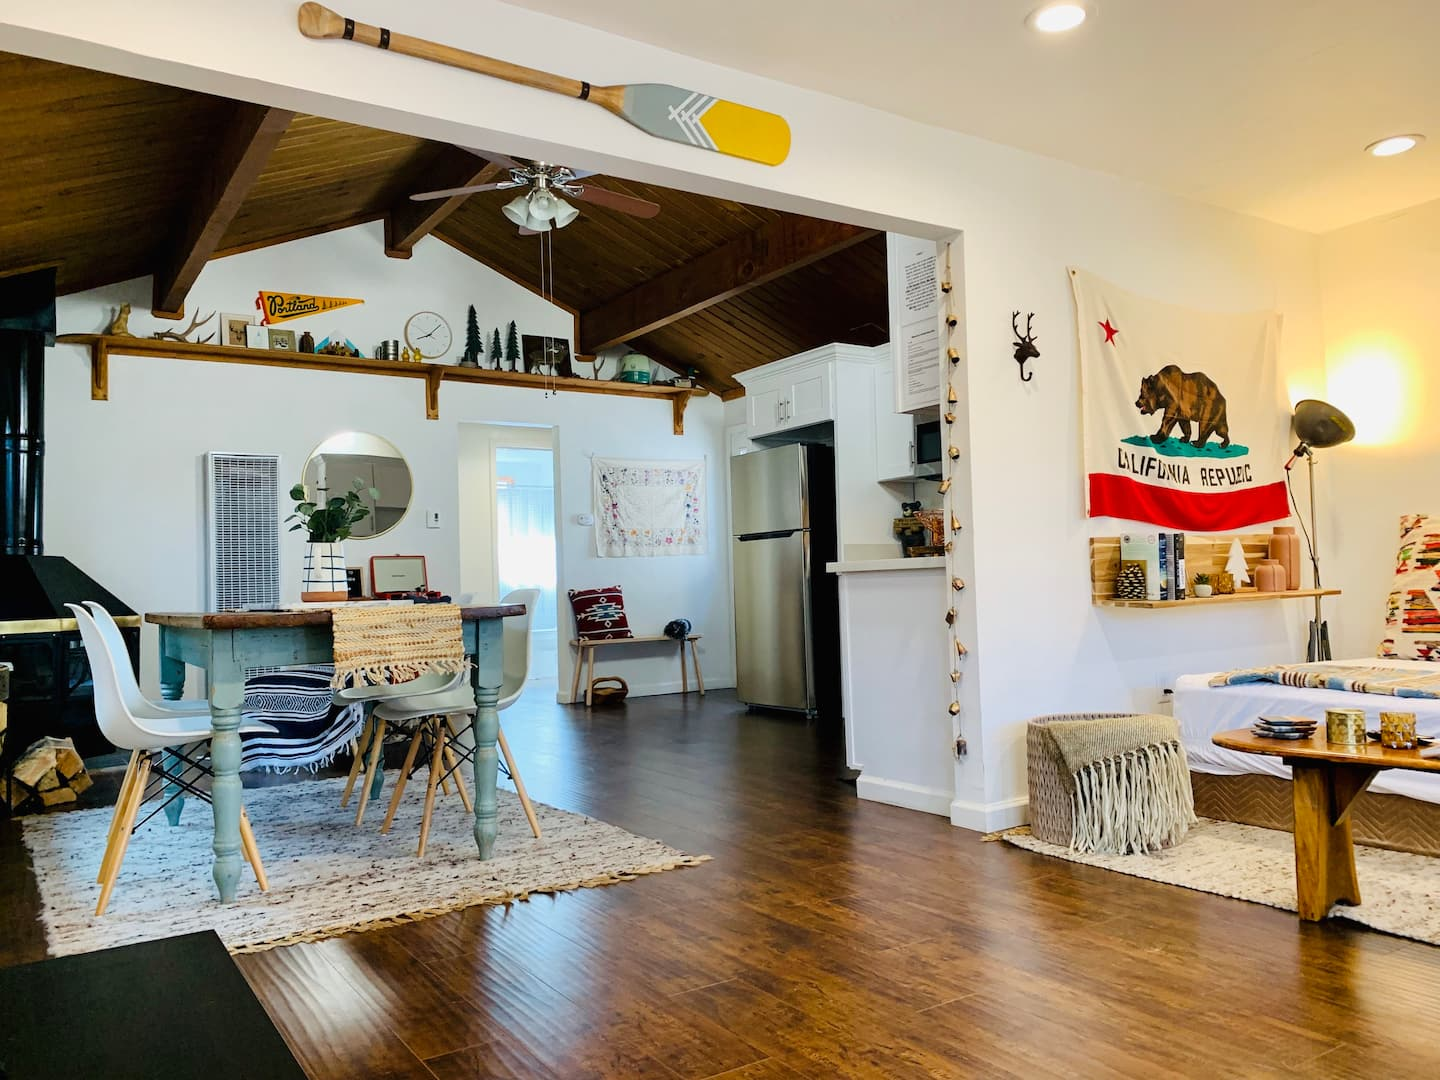 Budget Friendly Airbnb in Big Bear